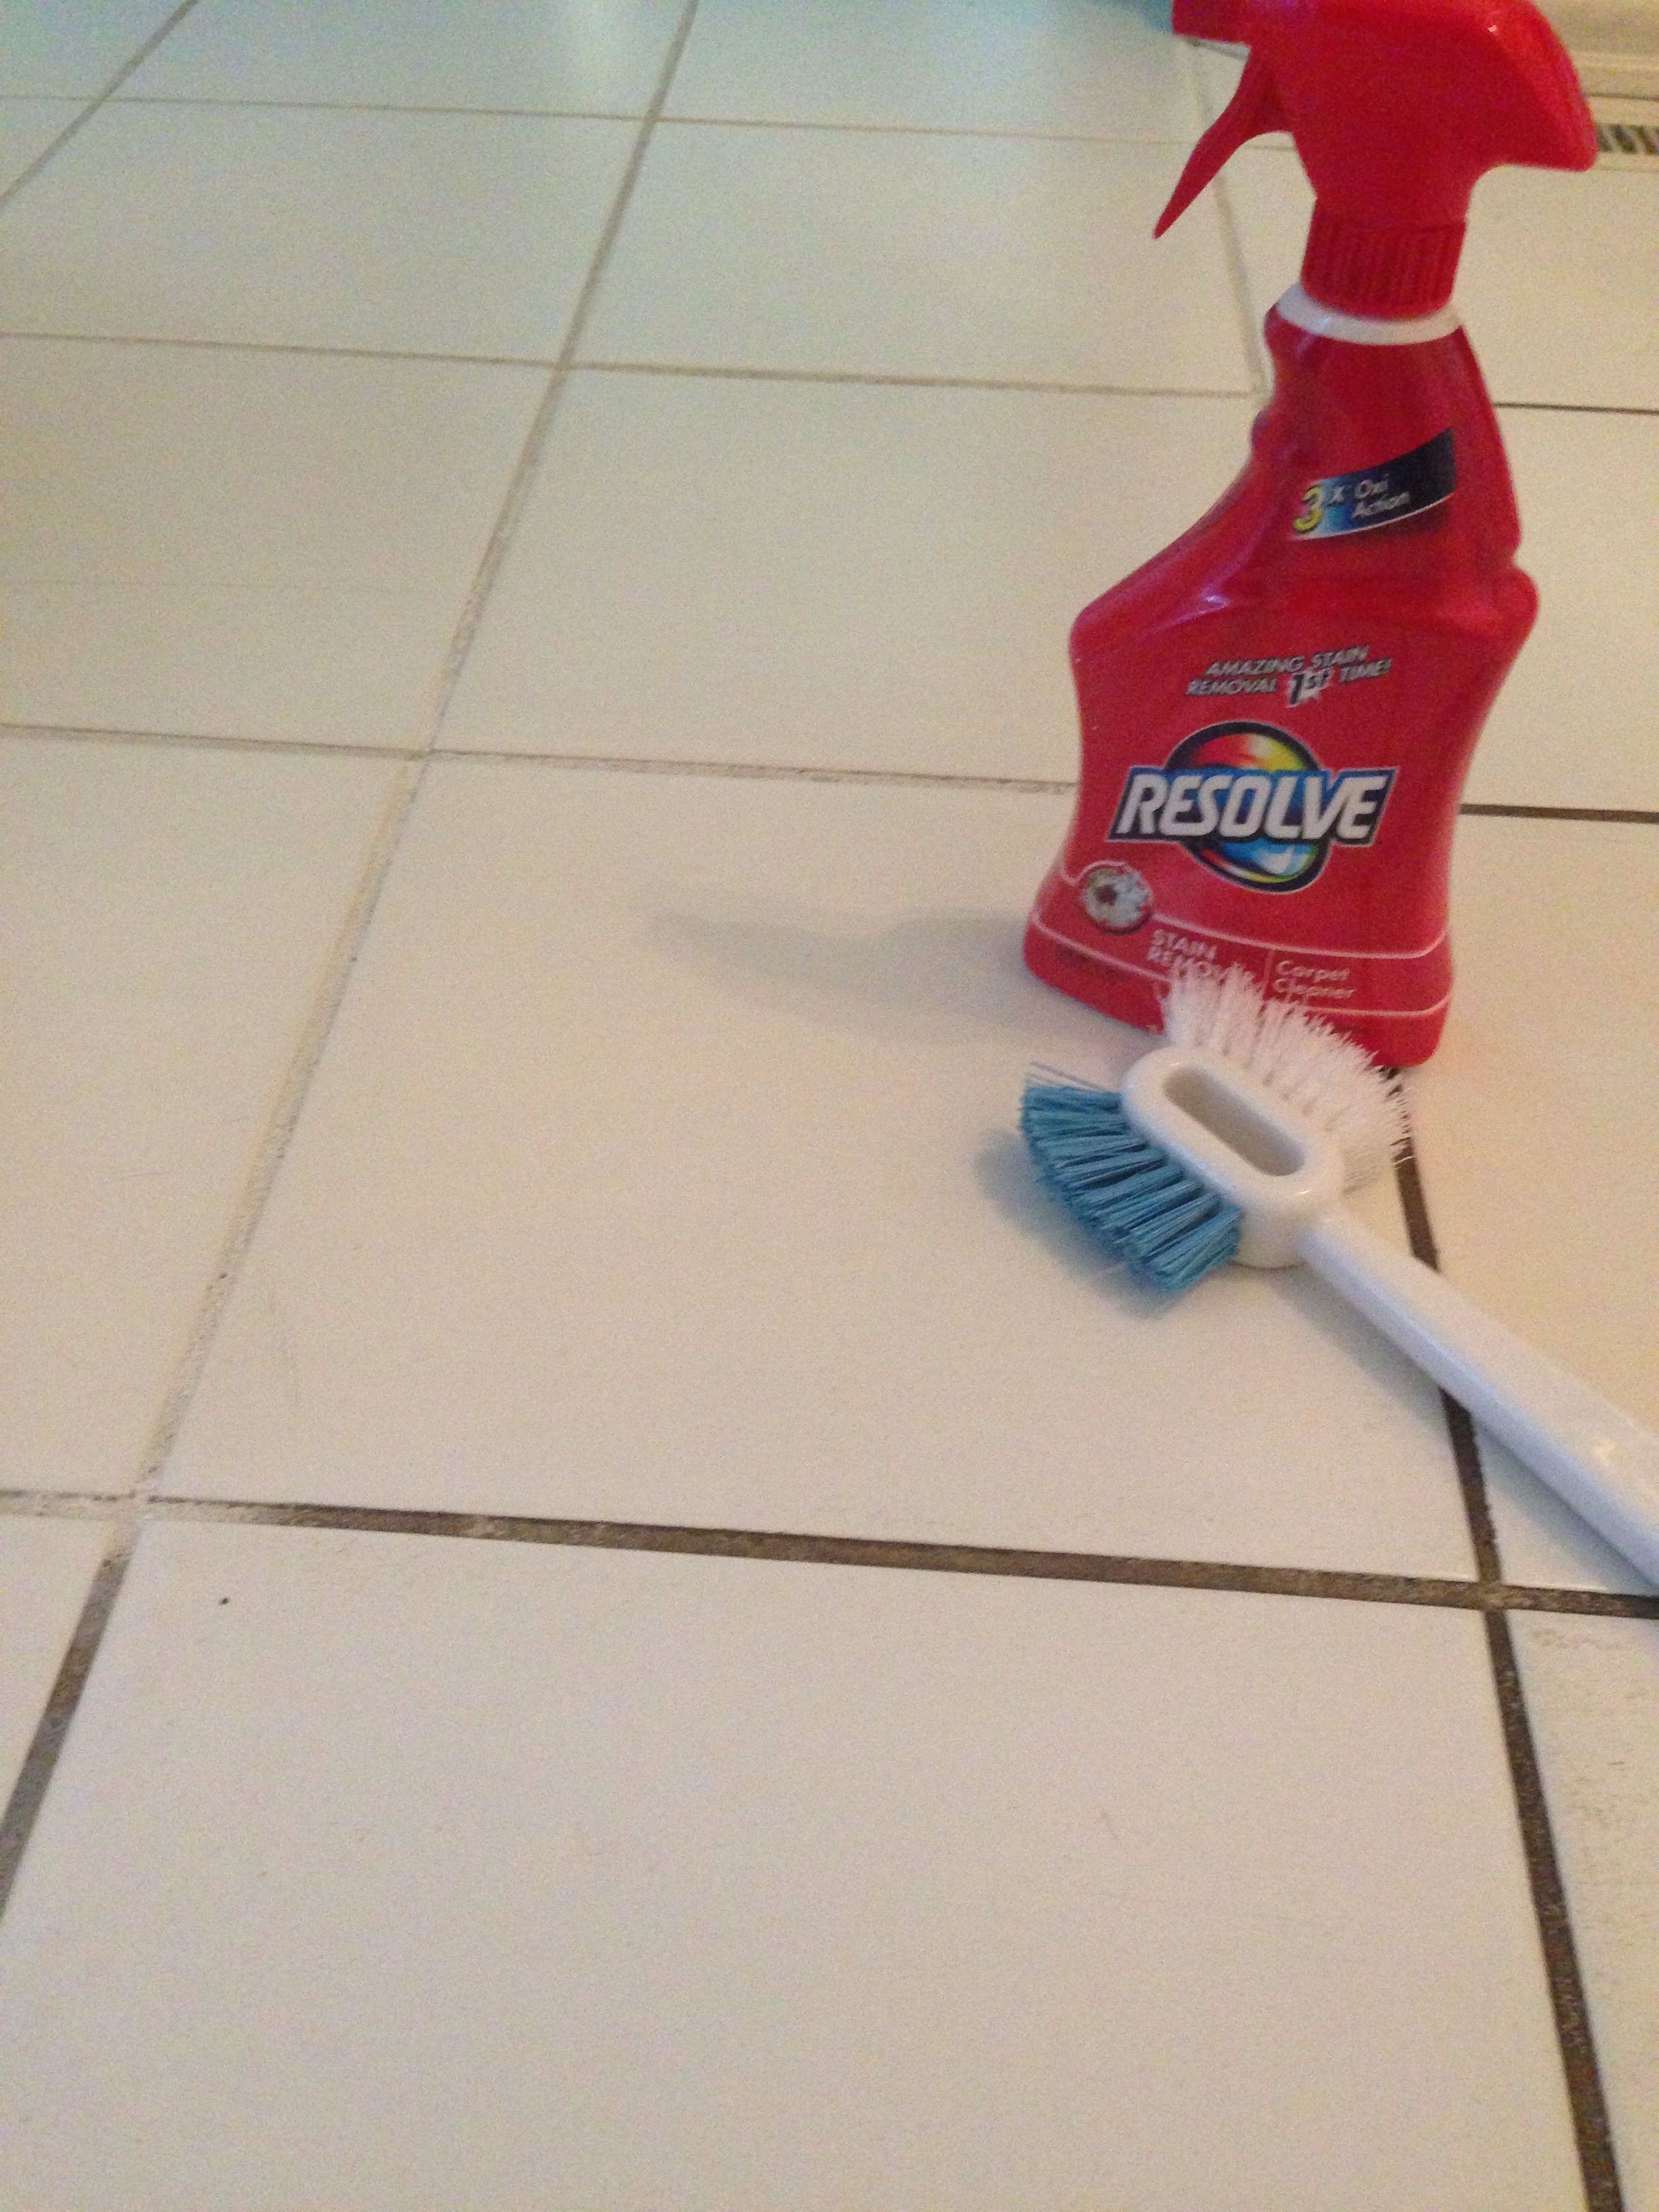 Resolve carpet cleaner to clean grout | Pinterest | Hydrogen ...